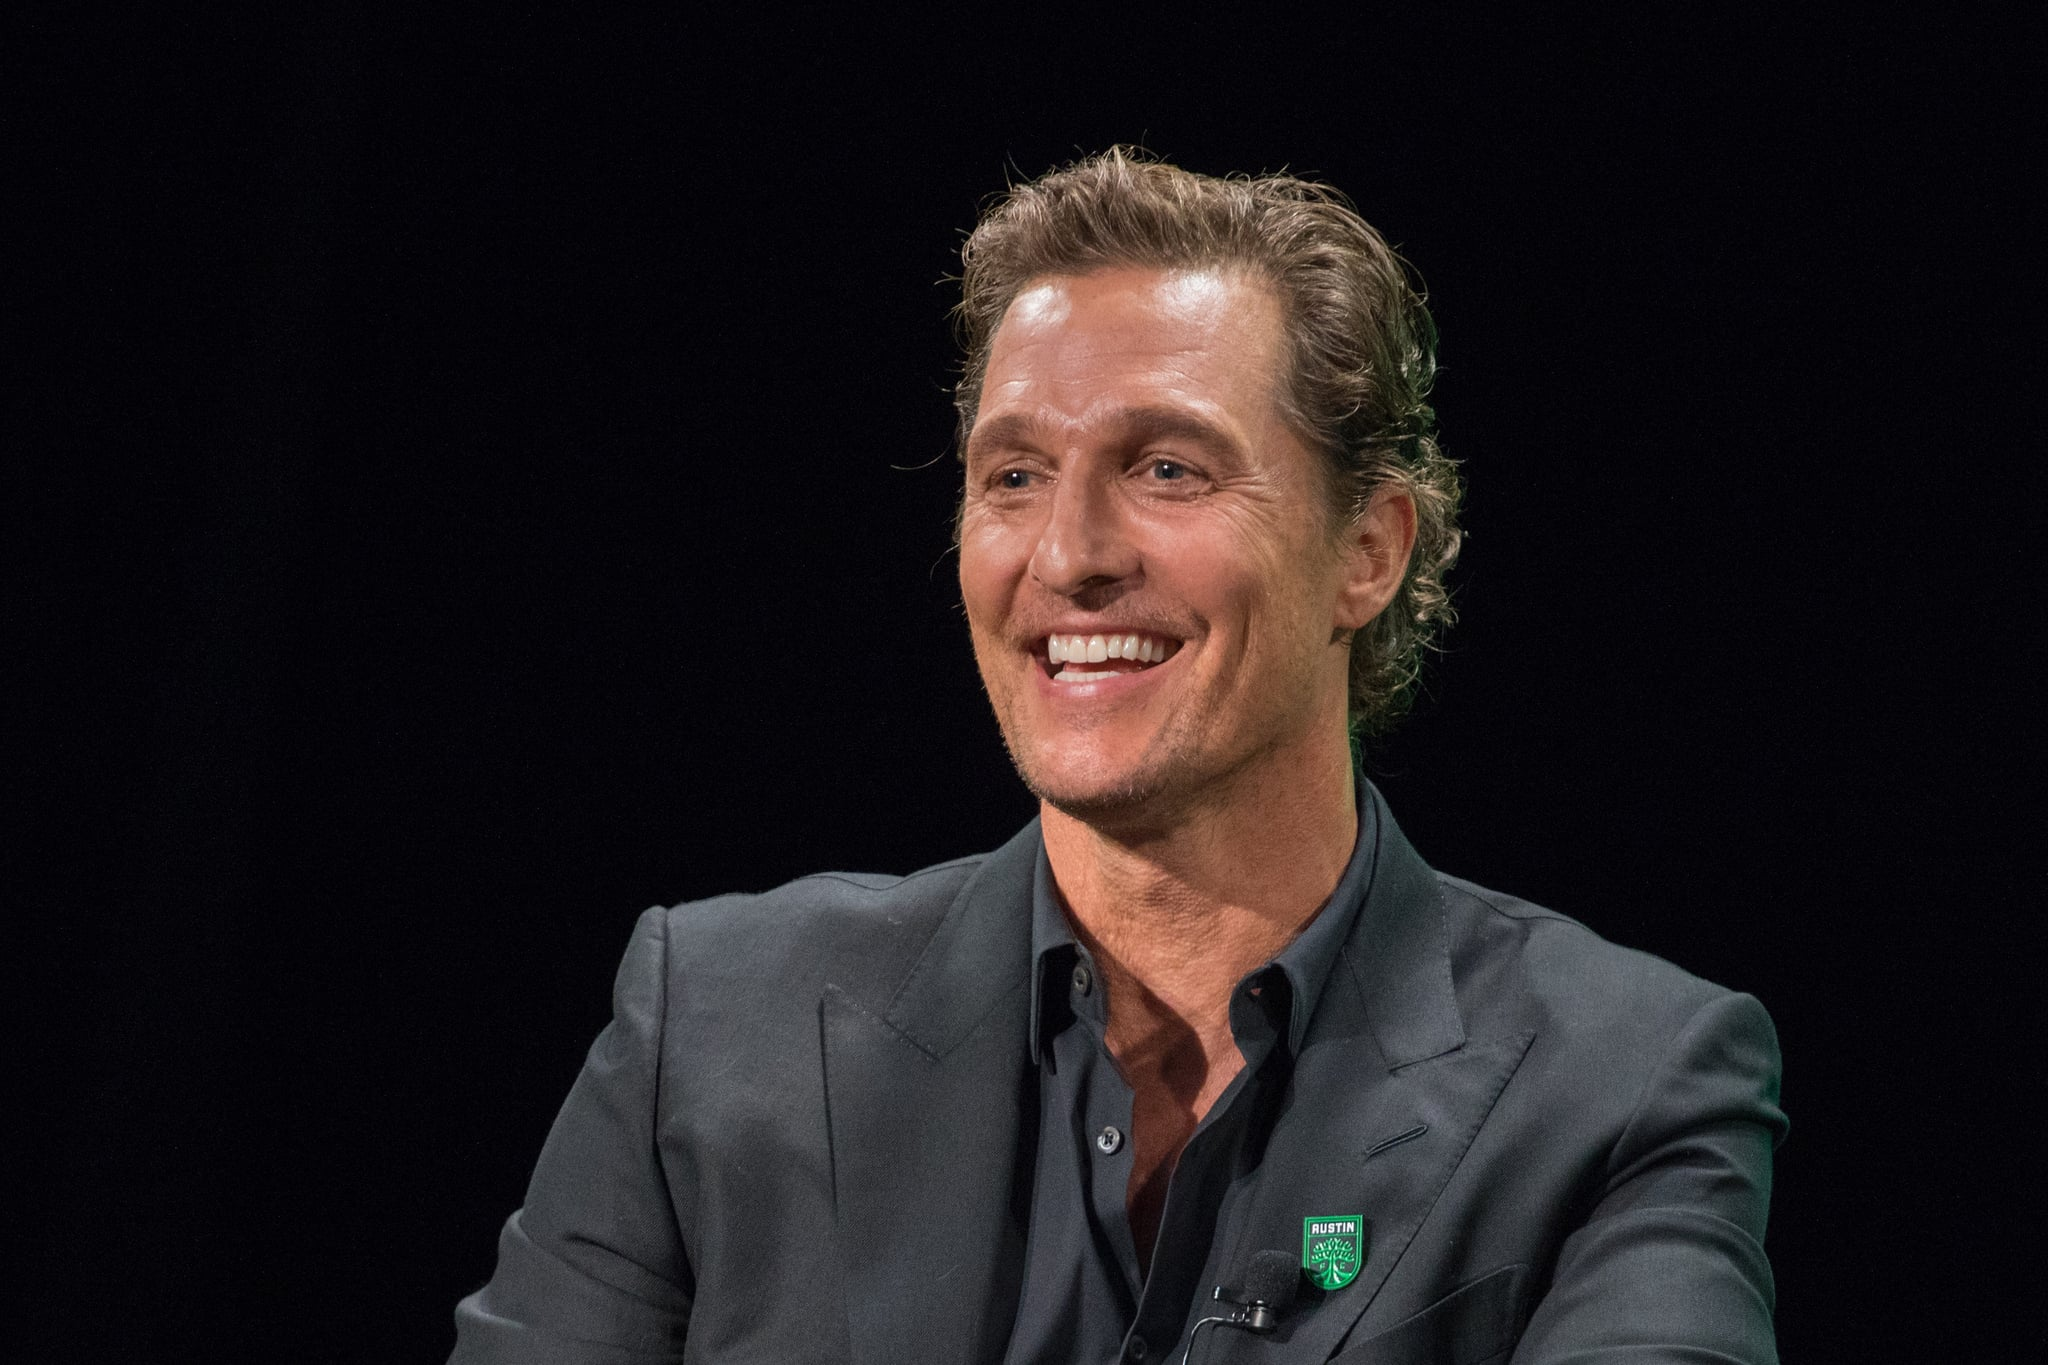 AUSTIN, TEXAS - AUGUST 23: Matthew McConaughey, Academy Award-winning actor attends the Austin FC Major League Football club announcement of four new investors including himself as the 'Minister of Culture' at 3TEN ACL Live on August 23, 2019 in Austin, Texas. (Photo by Rick Kern/Getty Images)